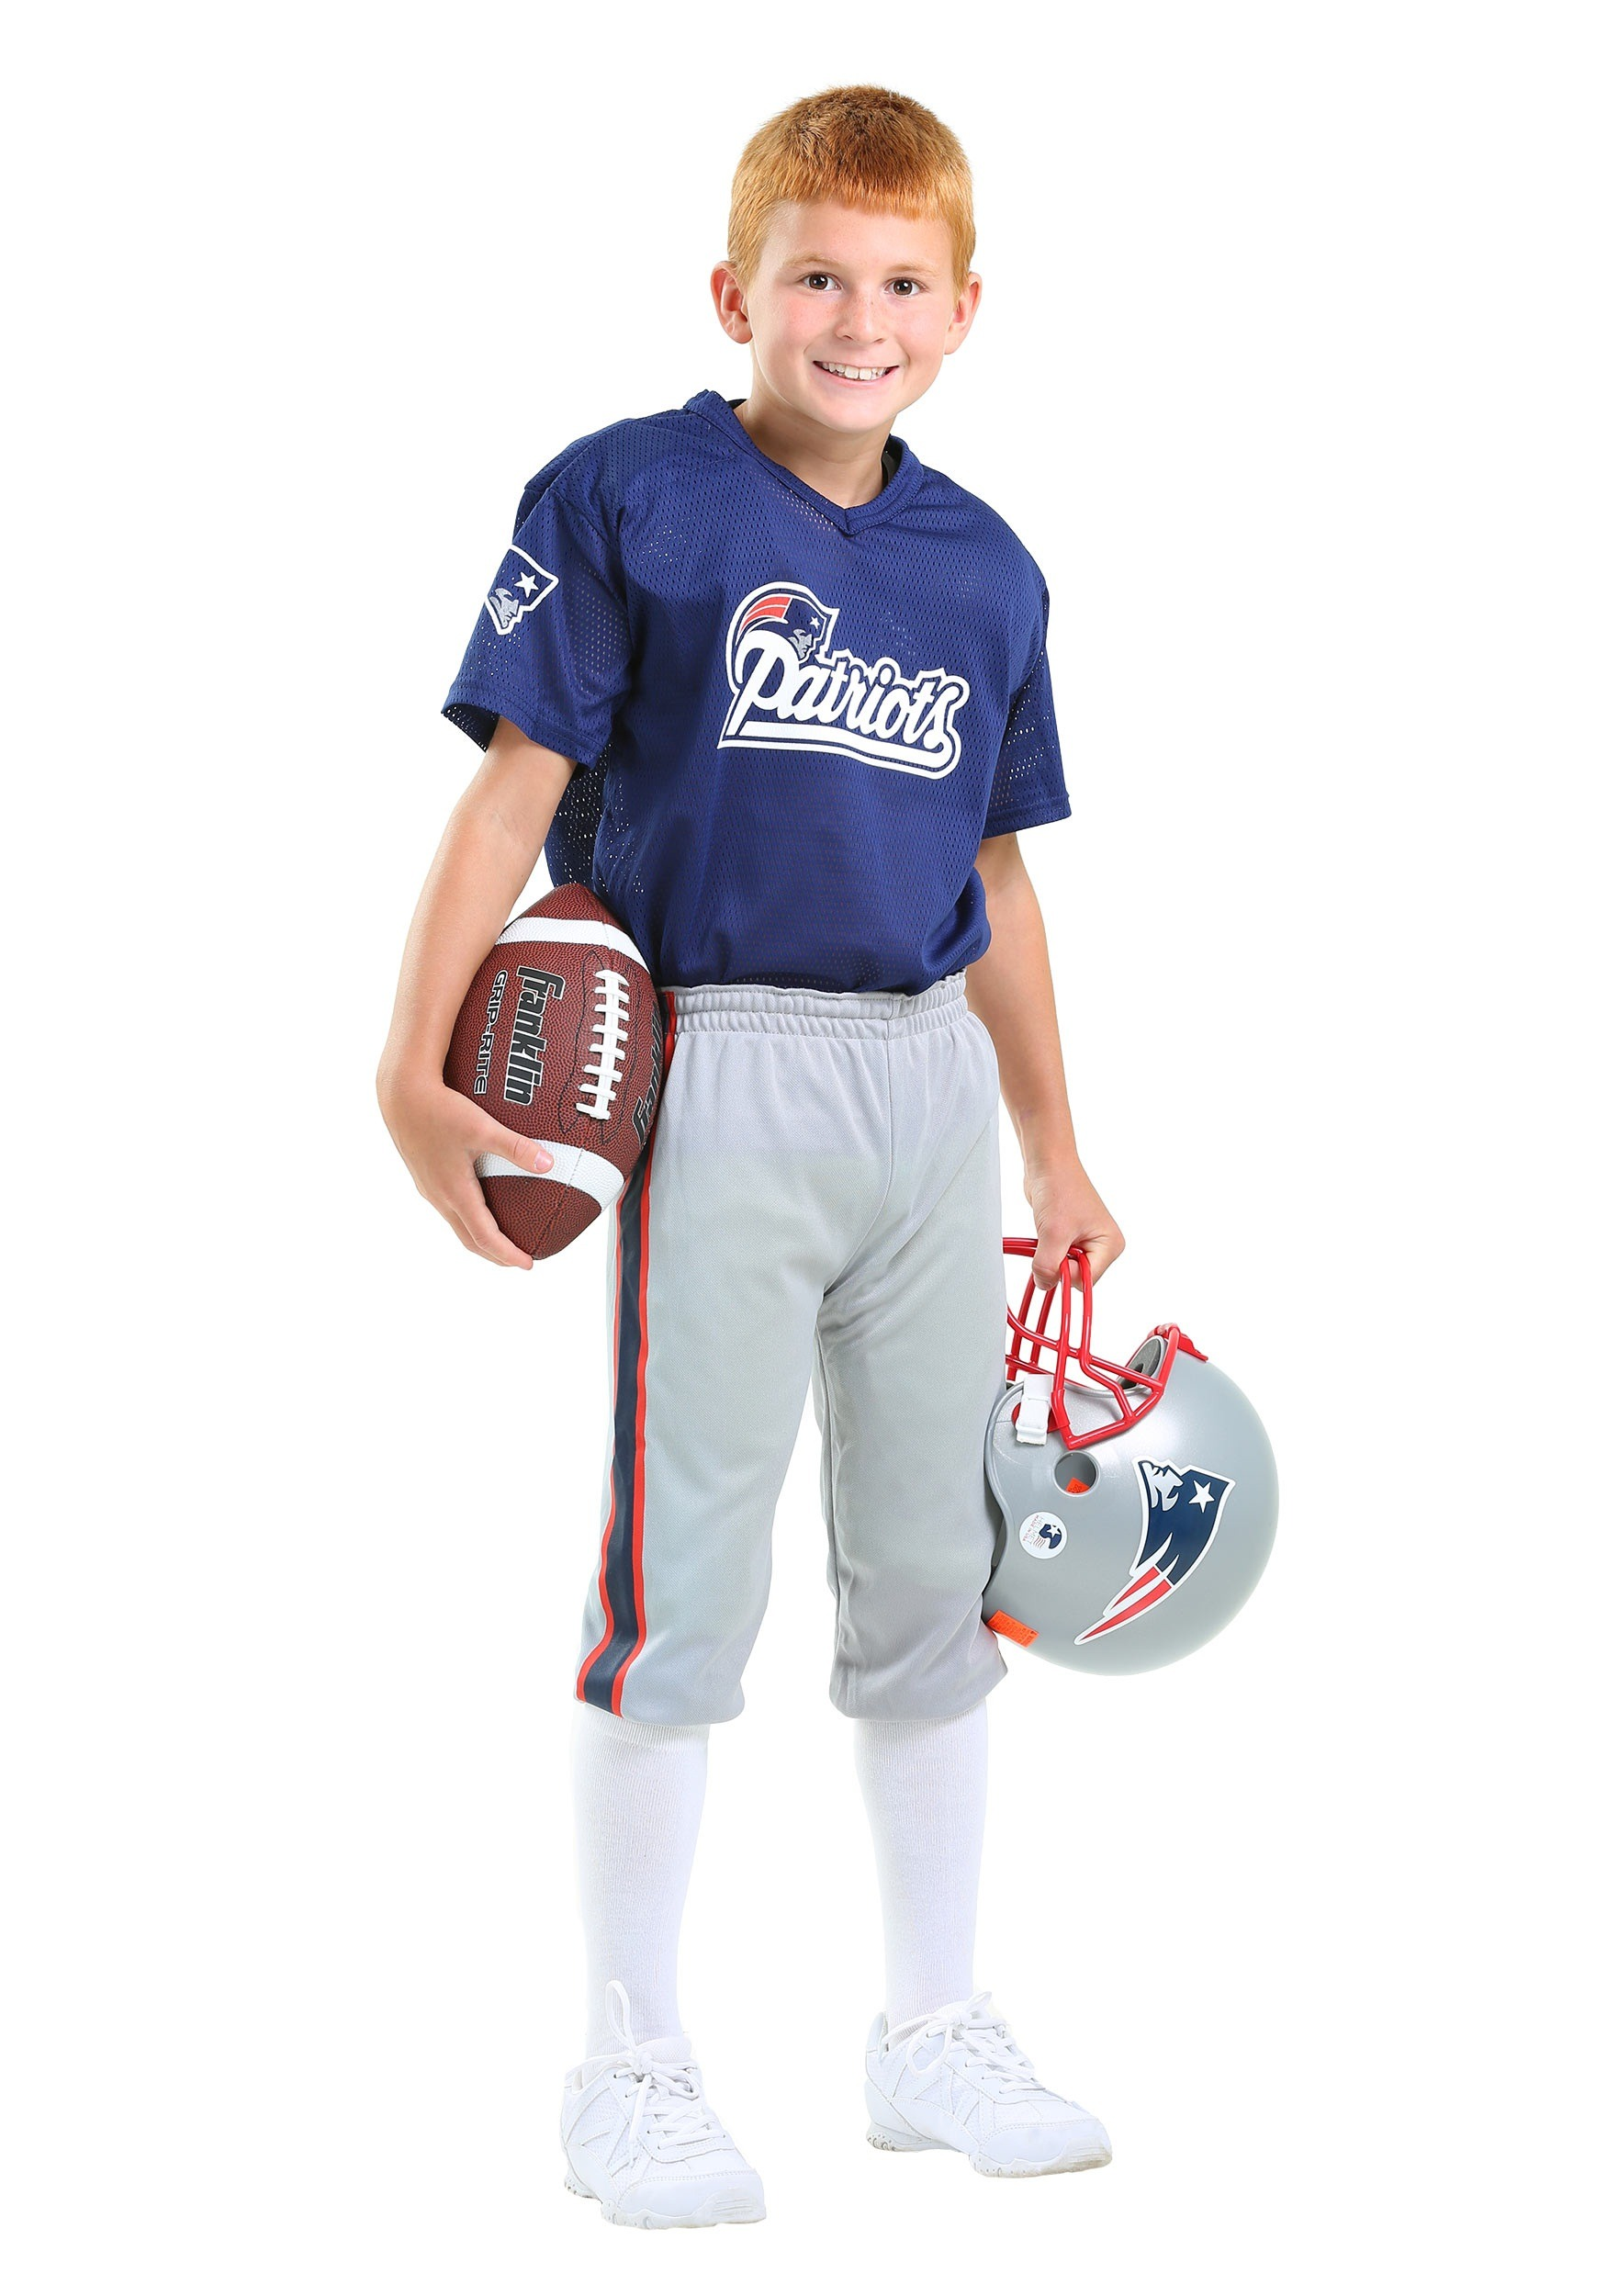 Football Player Costumes   Uniforms for Kids and Adults 327459901